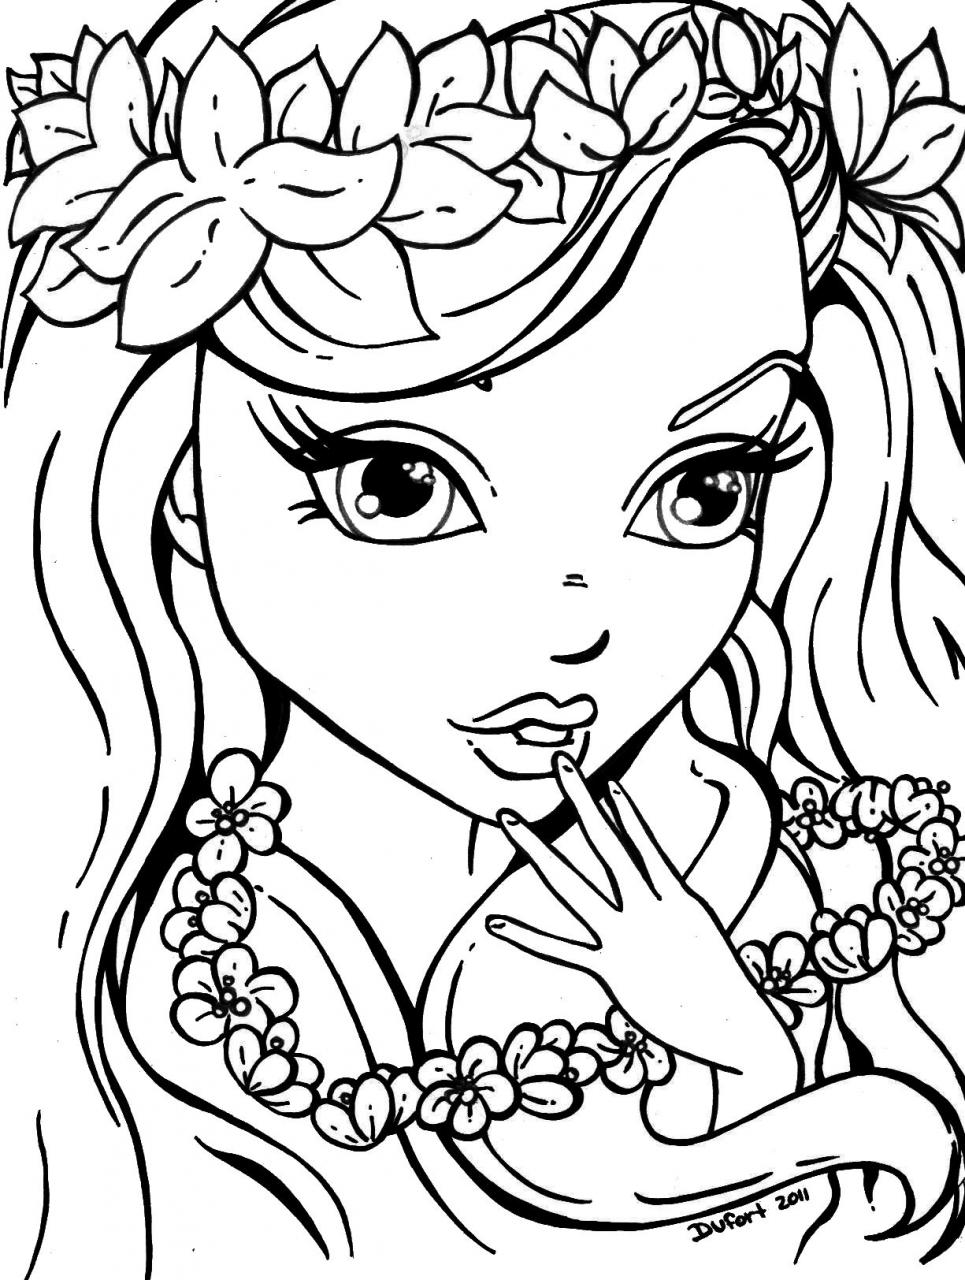 coloring sheet girl coloring pages for girls best coloring pages for kids coloring sheet girl 1 1